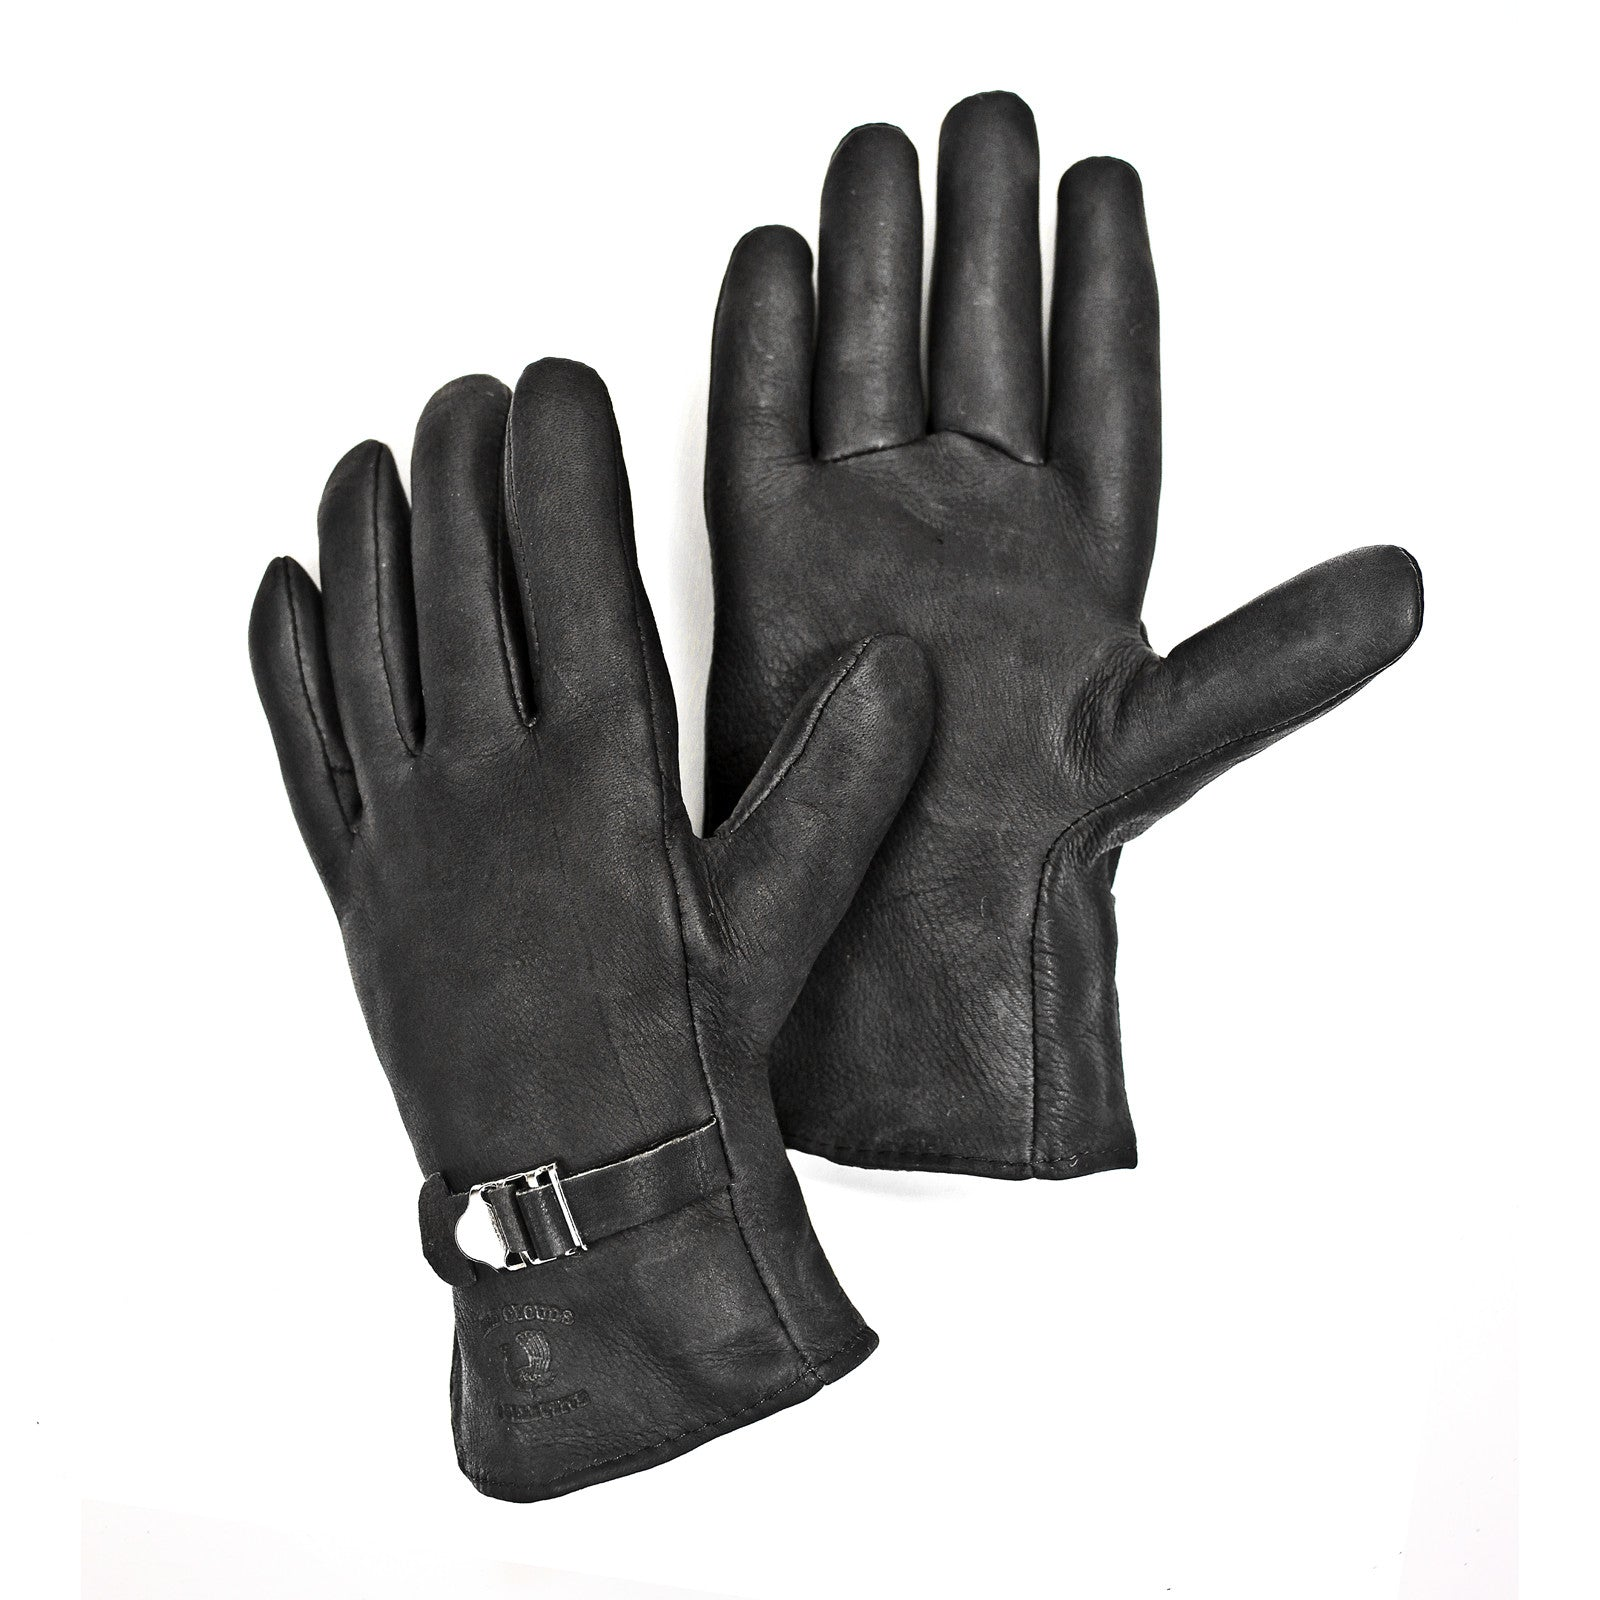 leather glove, made in usa glove, black leather glove, geier glove, red clouds glove, moto glove, motorcycle gloves, thin leather gloves, driving glove